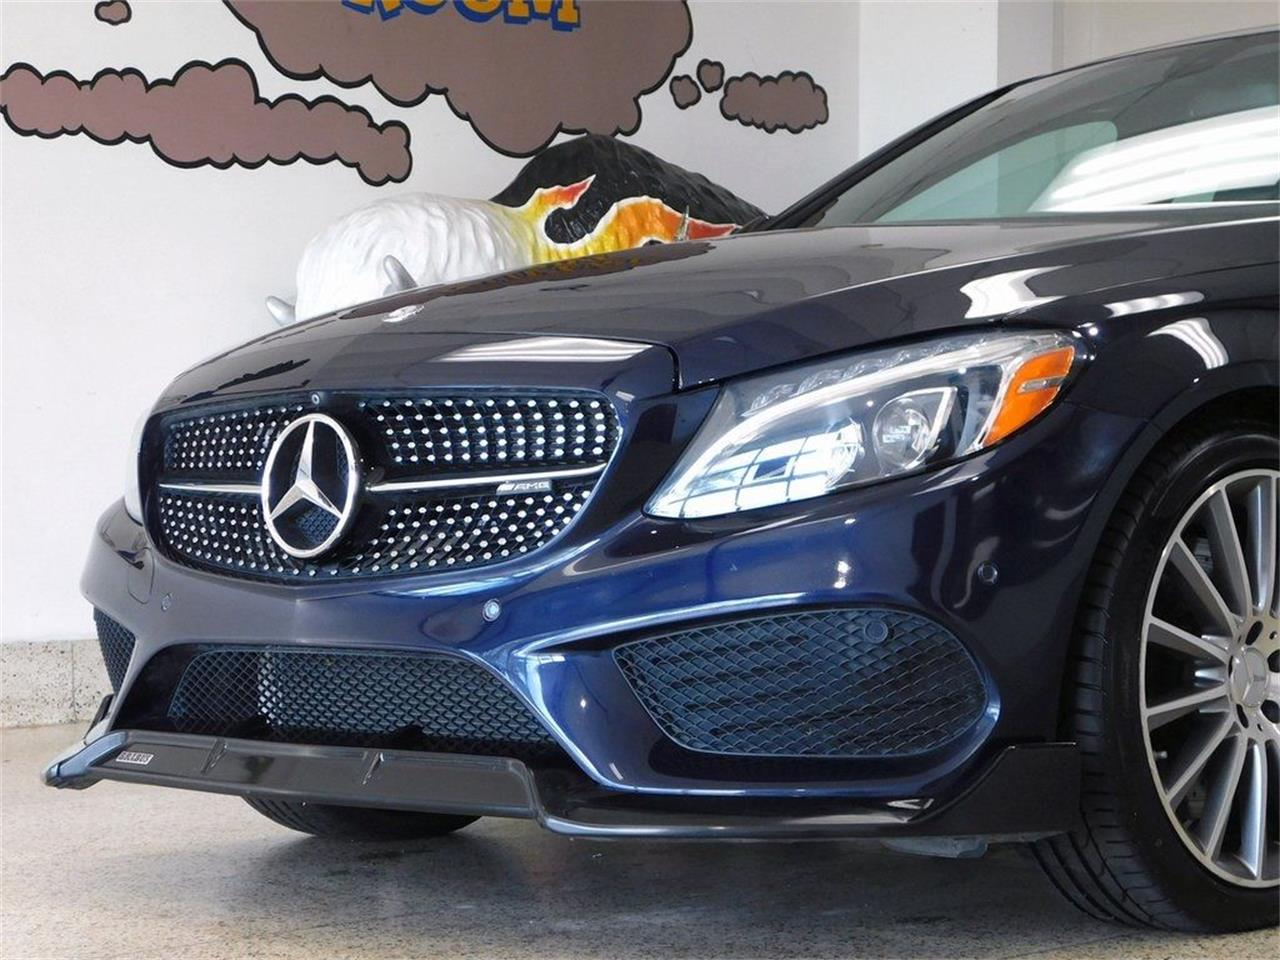 2017 Mercedes-Benz C-Class (CC-1390024) for sale in Hamburg, New York